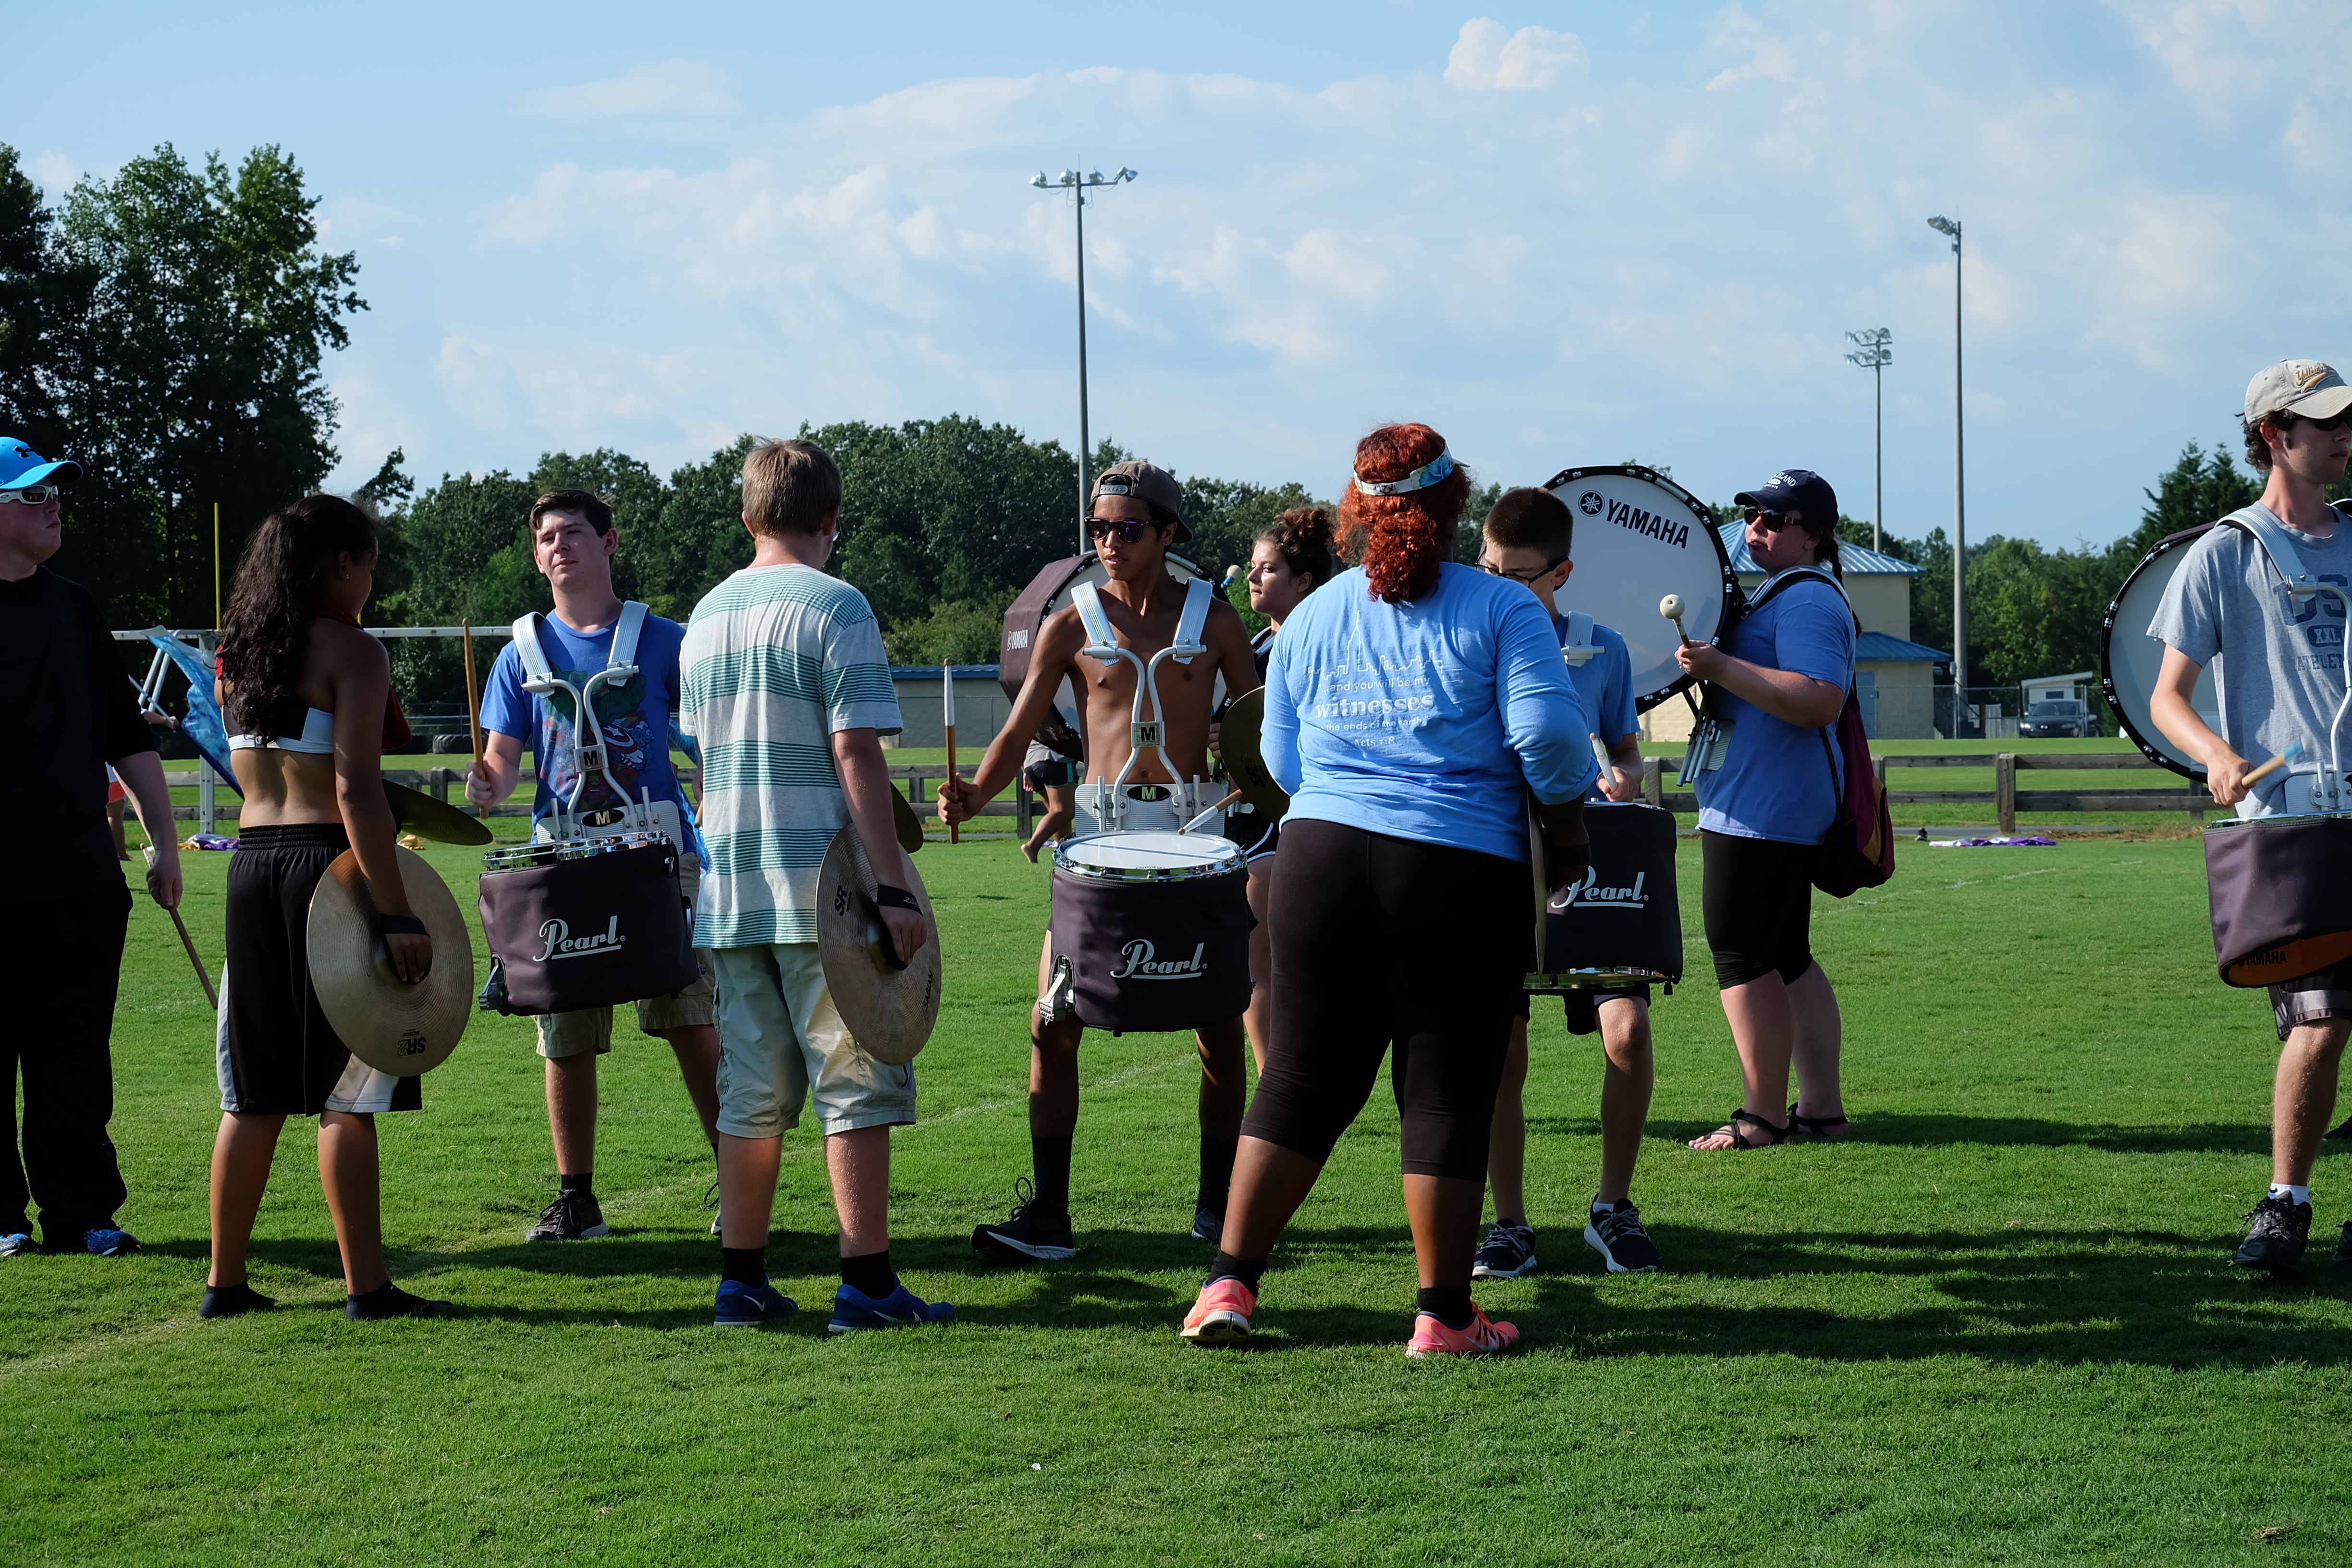 Snares 2